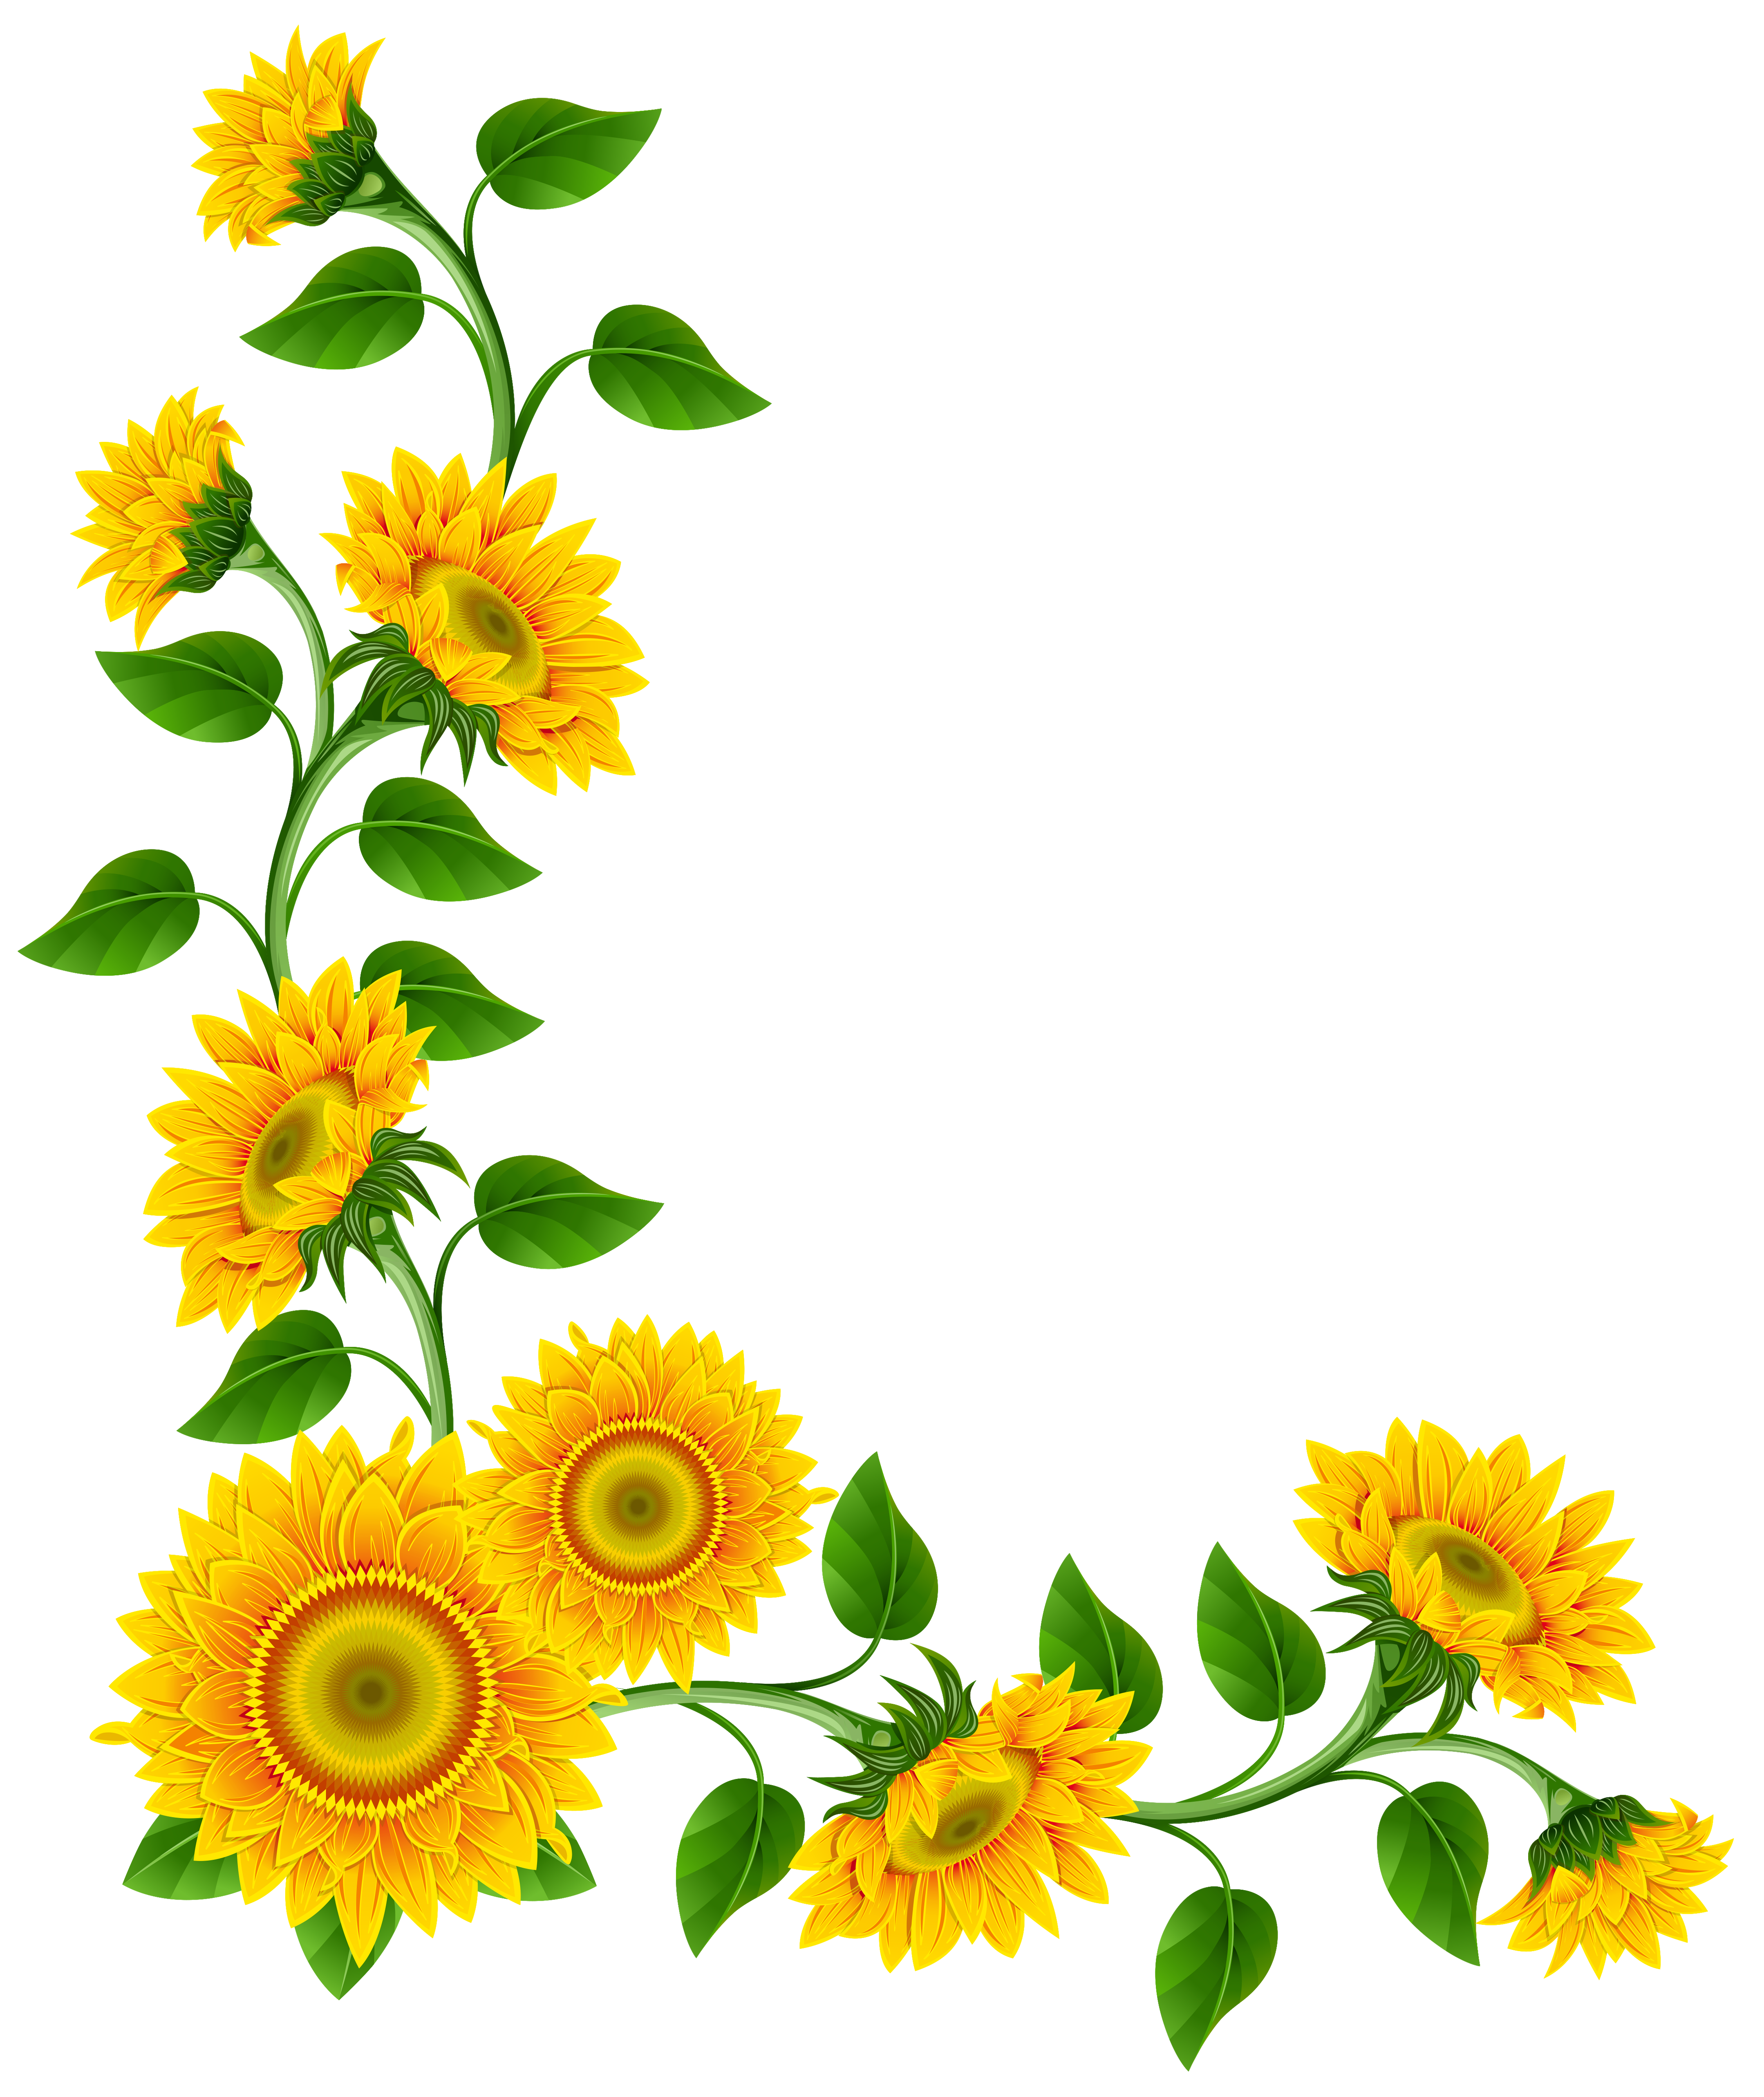 Free Sunflower Border Cliparts, Download Free Clip Art, Free Clip.